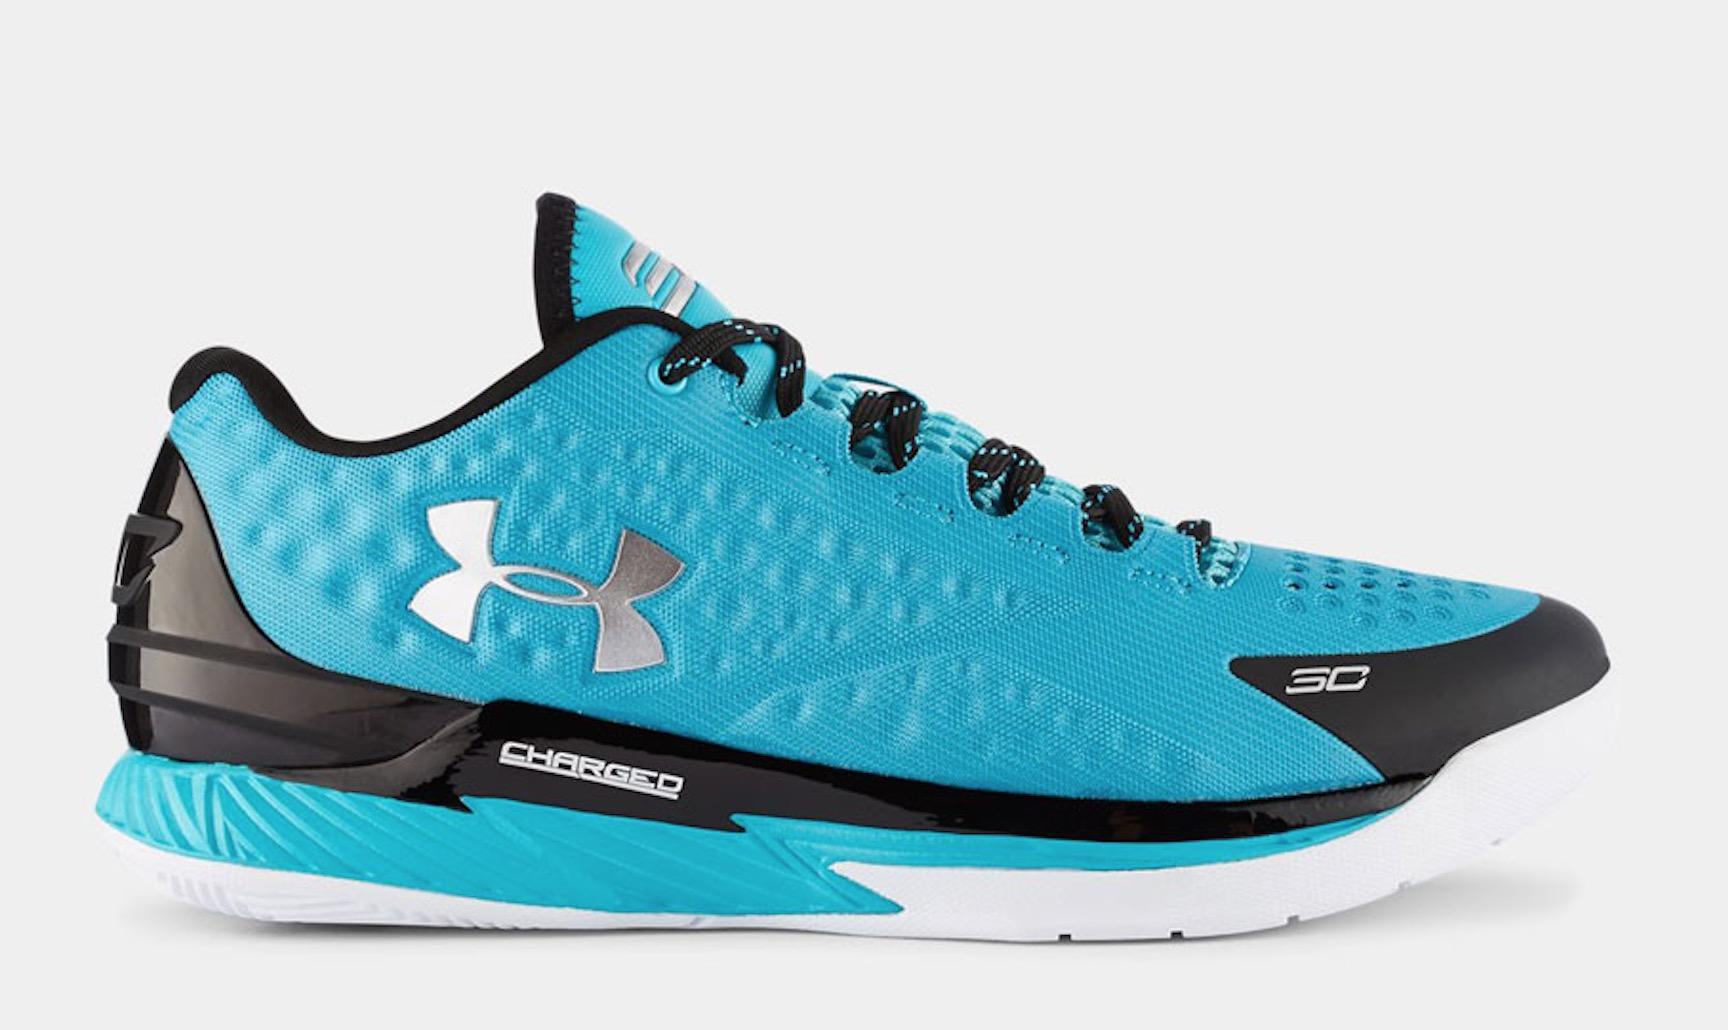 Under Armour Spandex | White Under Armour Shoes | Cheap Under Armour Shoes